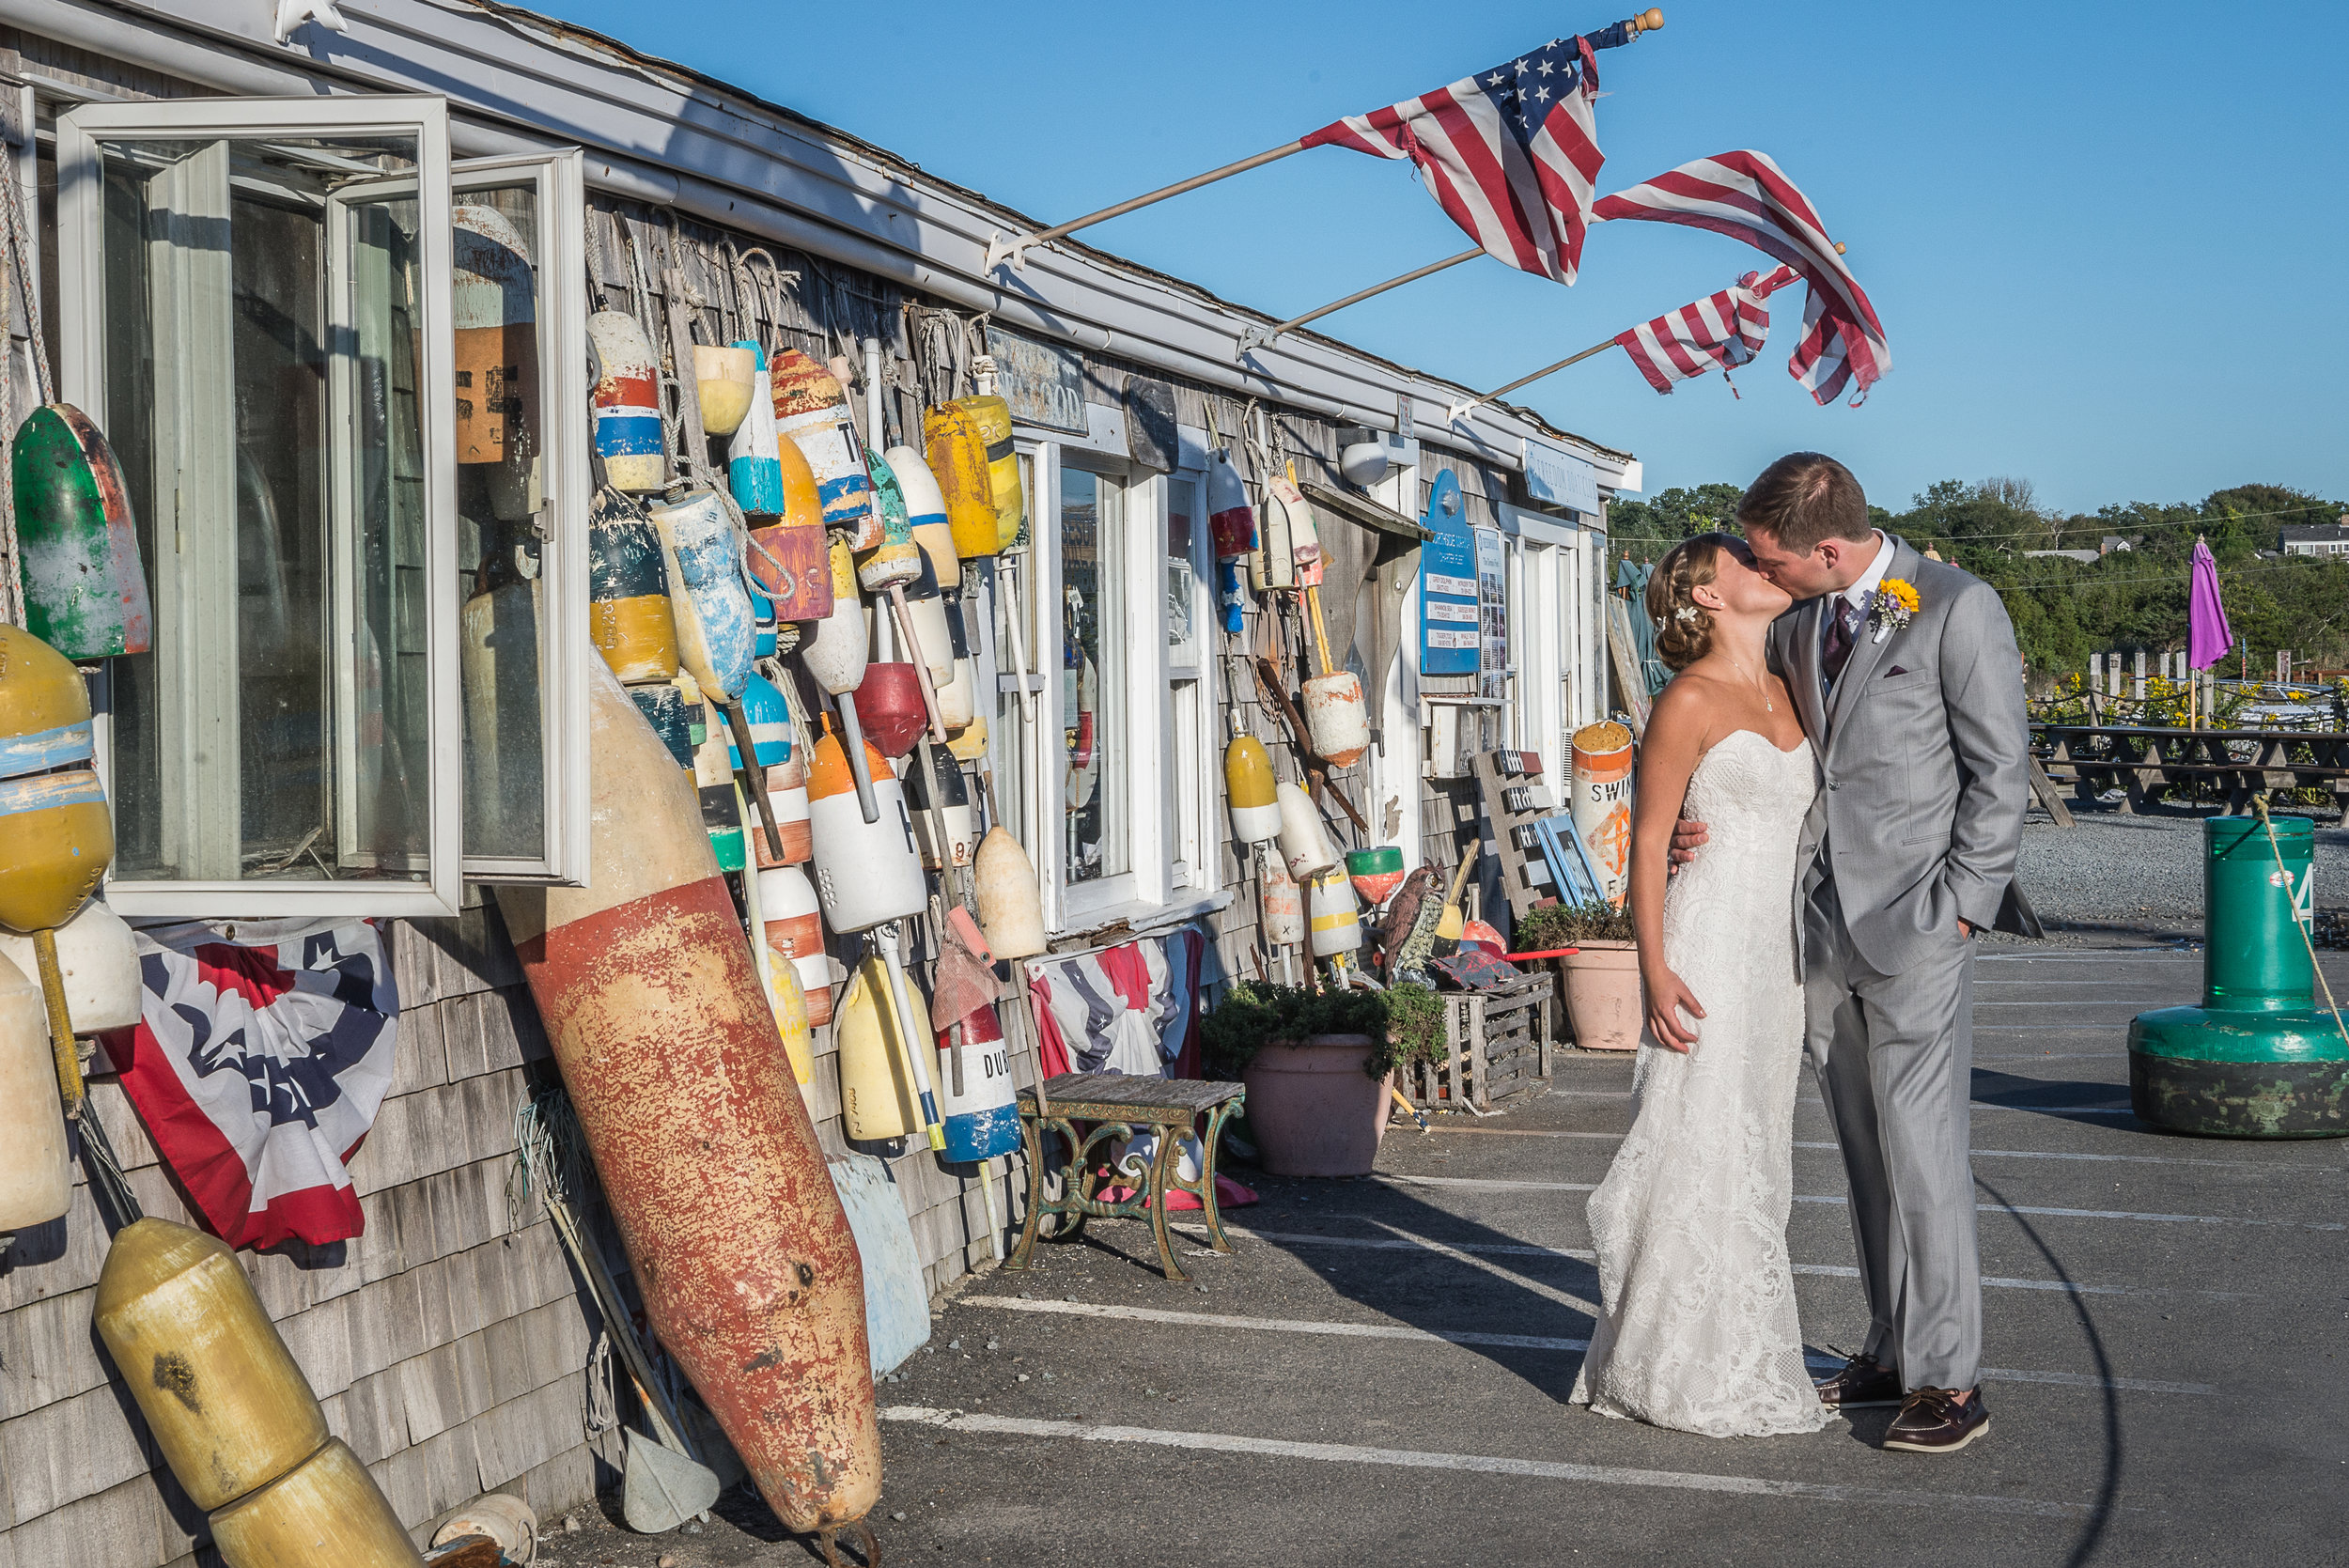 Sesuit Harbor Cafe: East Dennis, MA - Cape Cod